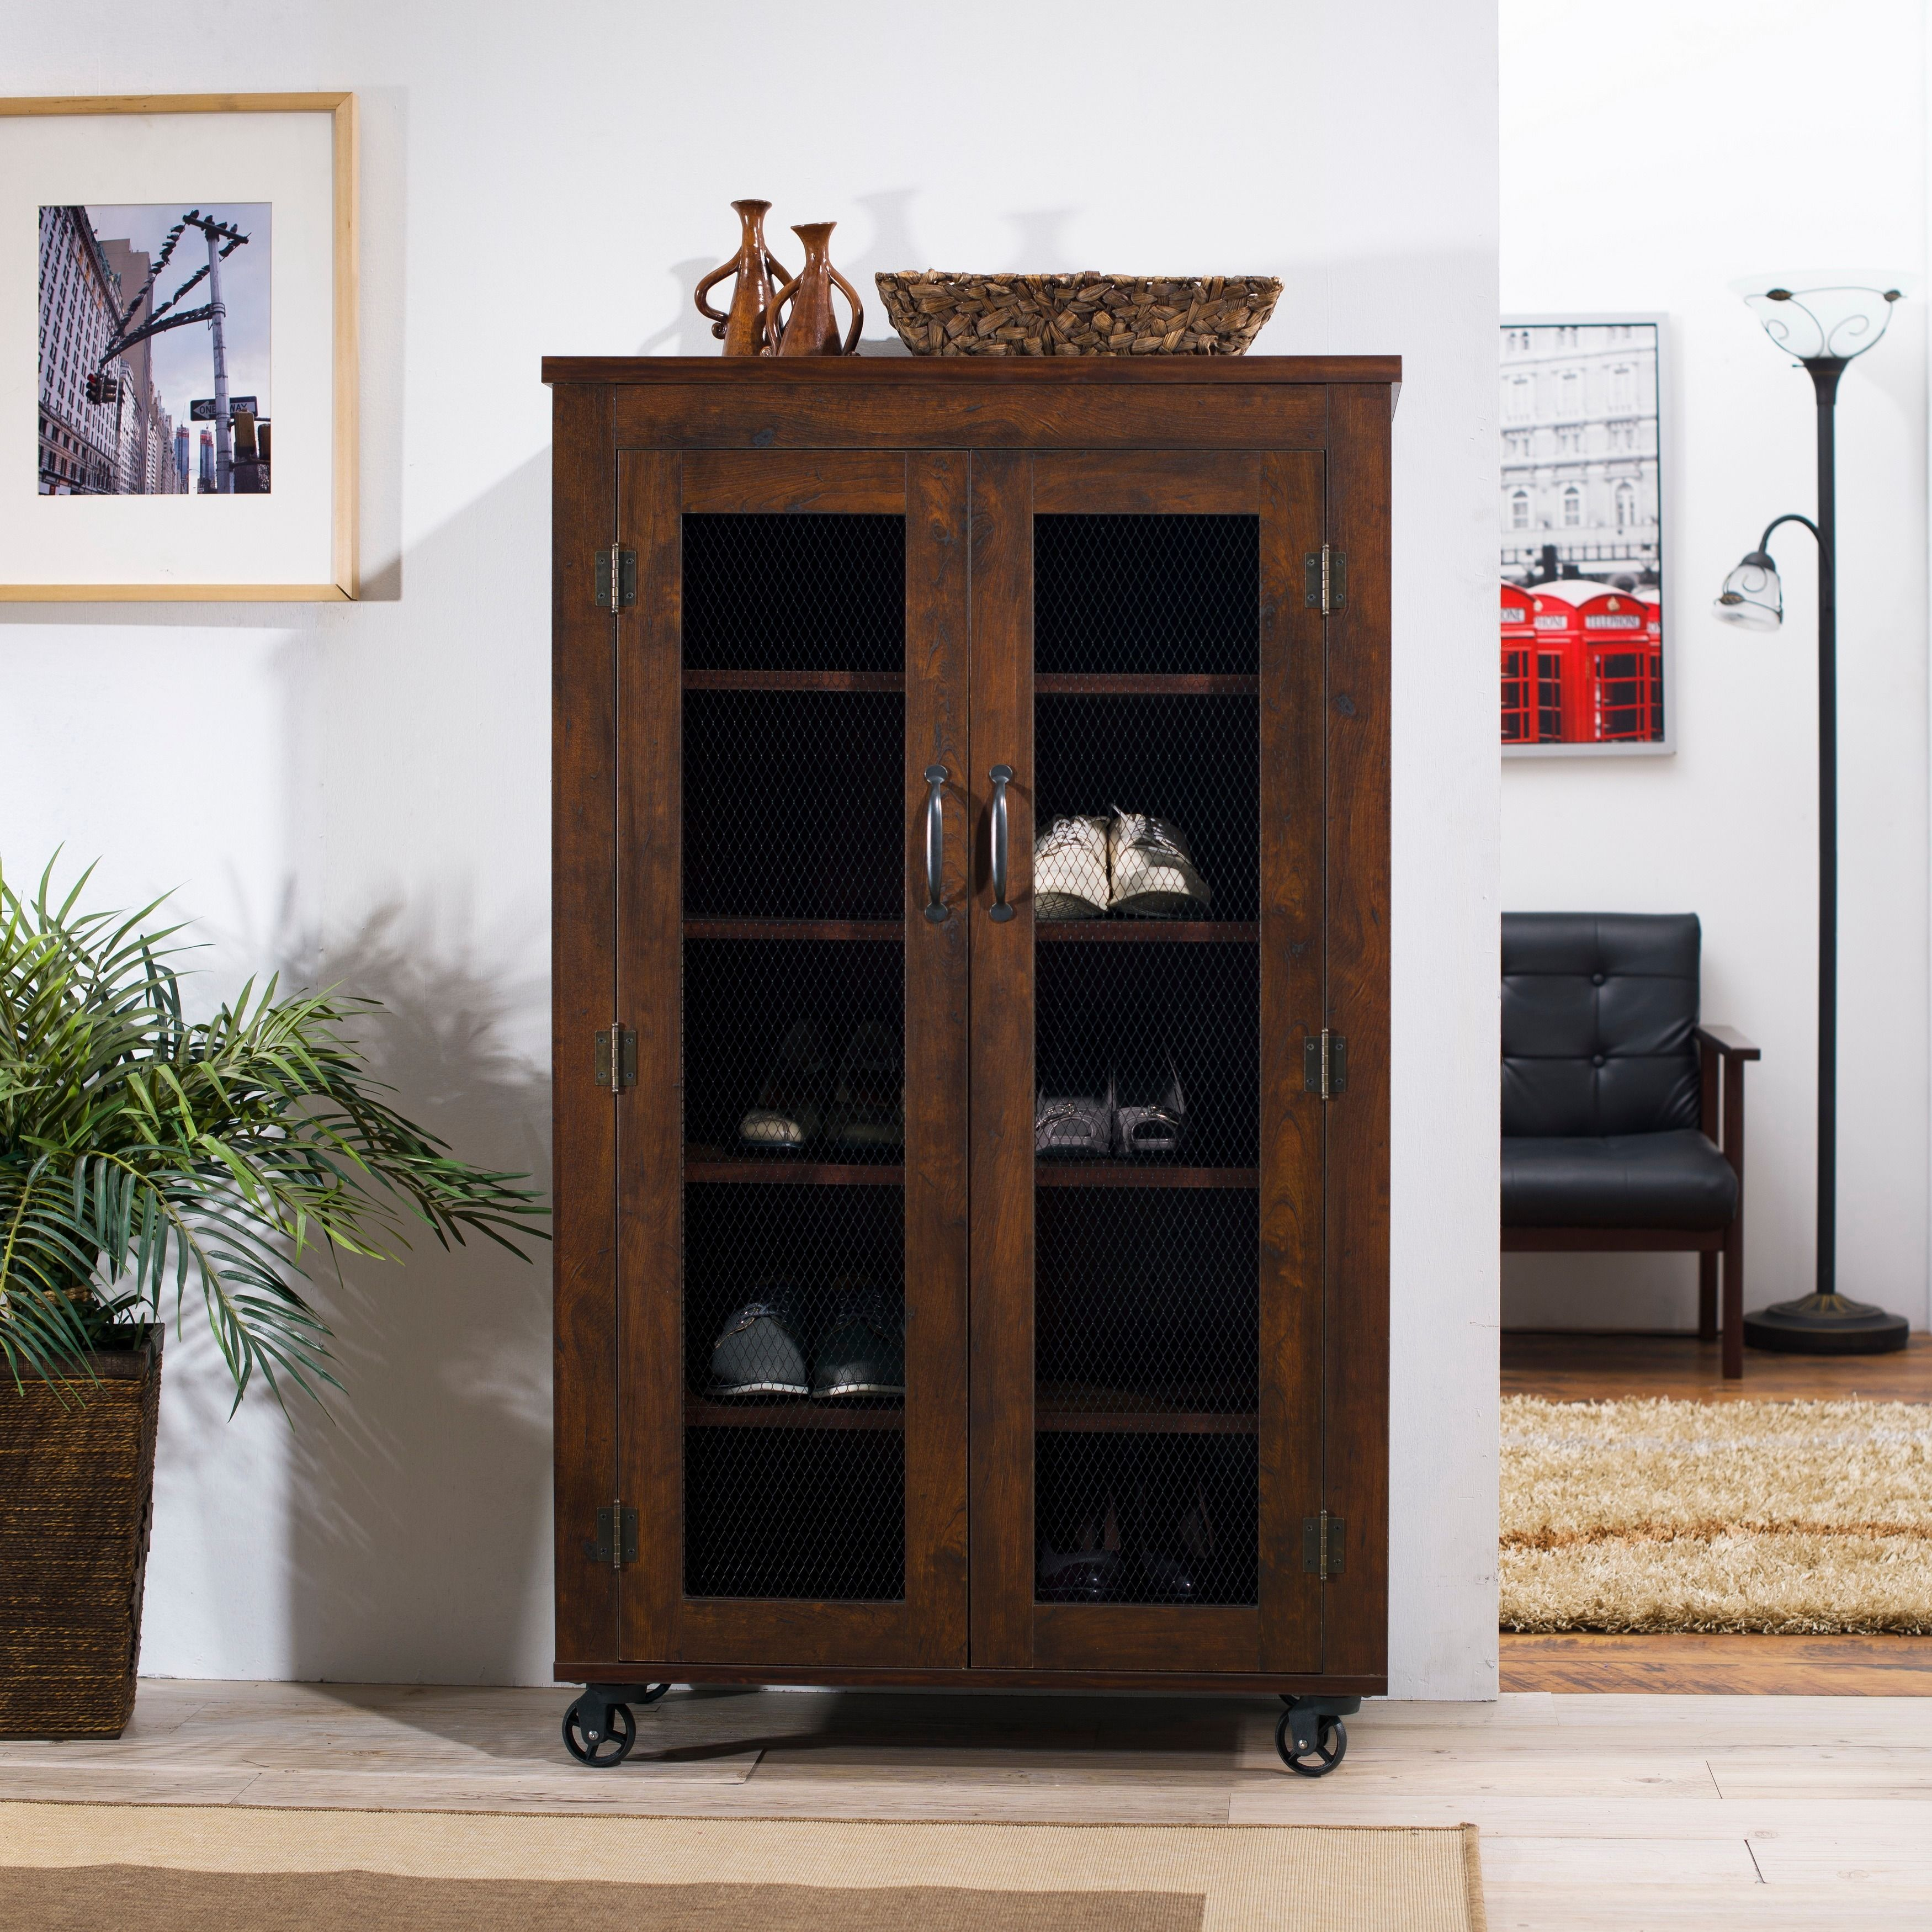 Mobile Display Cabinet Walnut Finish Display Cabinets And Mobiles On Pinterest